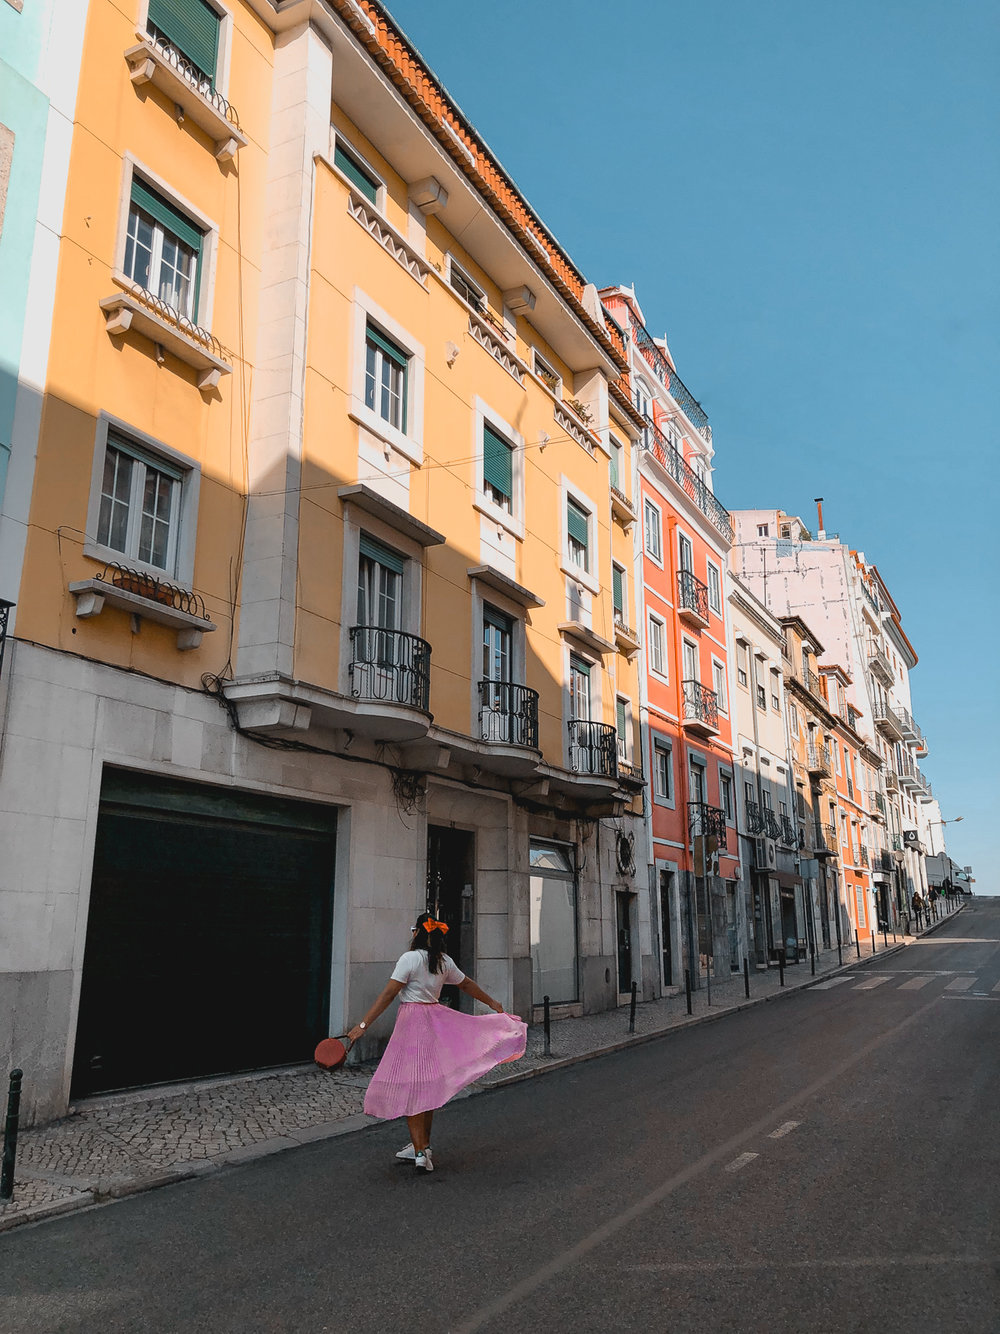 Colorful Portugal  Building.jpg